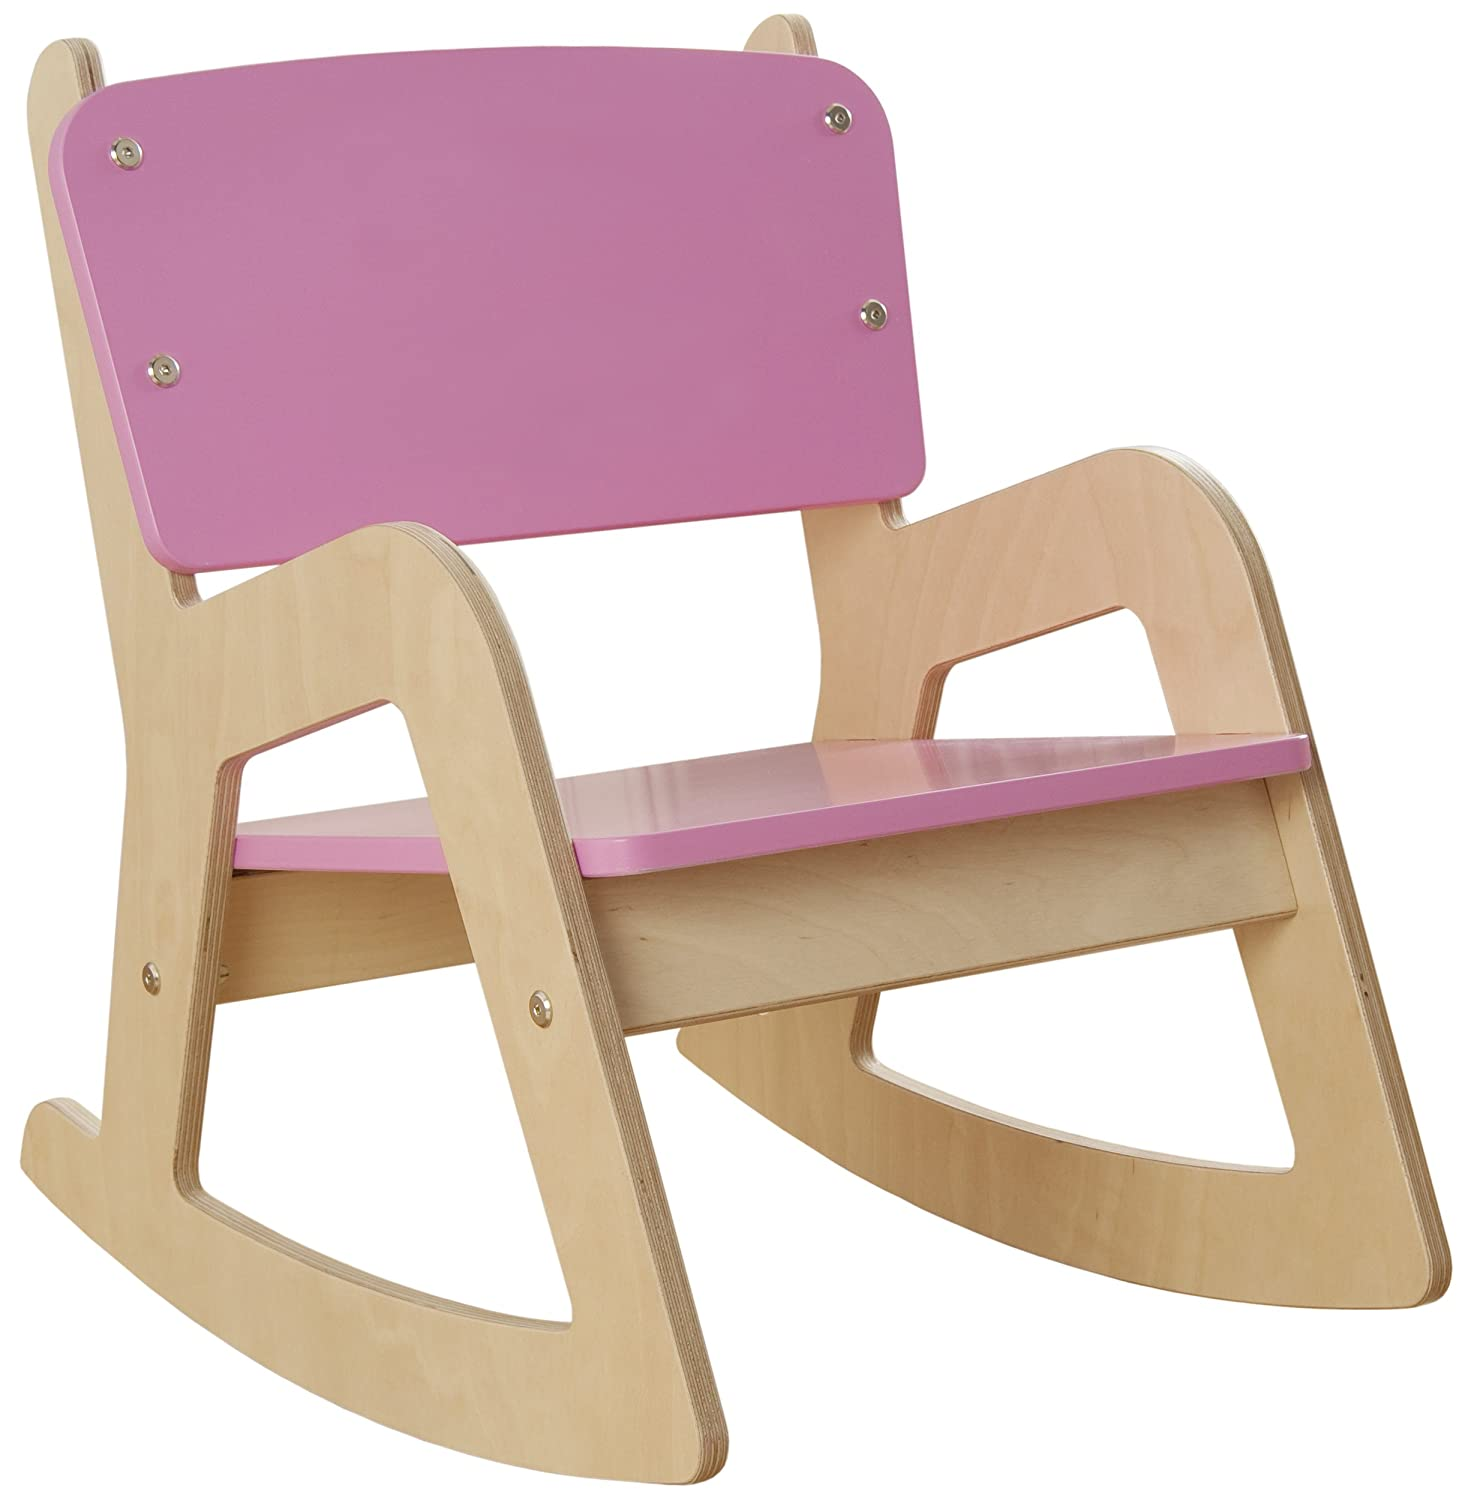 millhouse children s wooden rocking chair pink amazon co uk